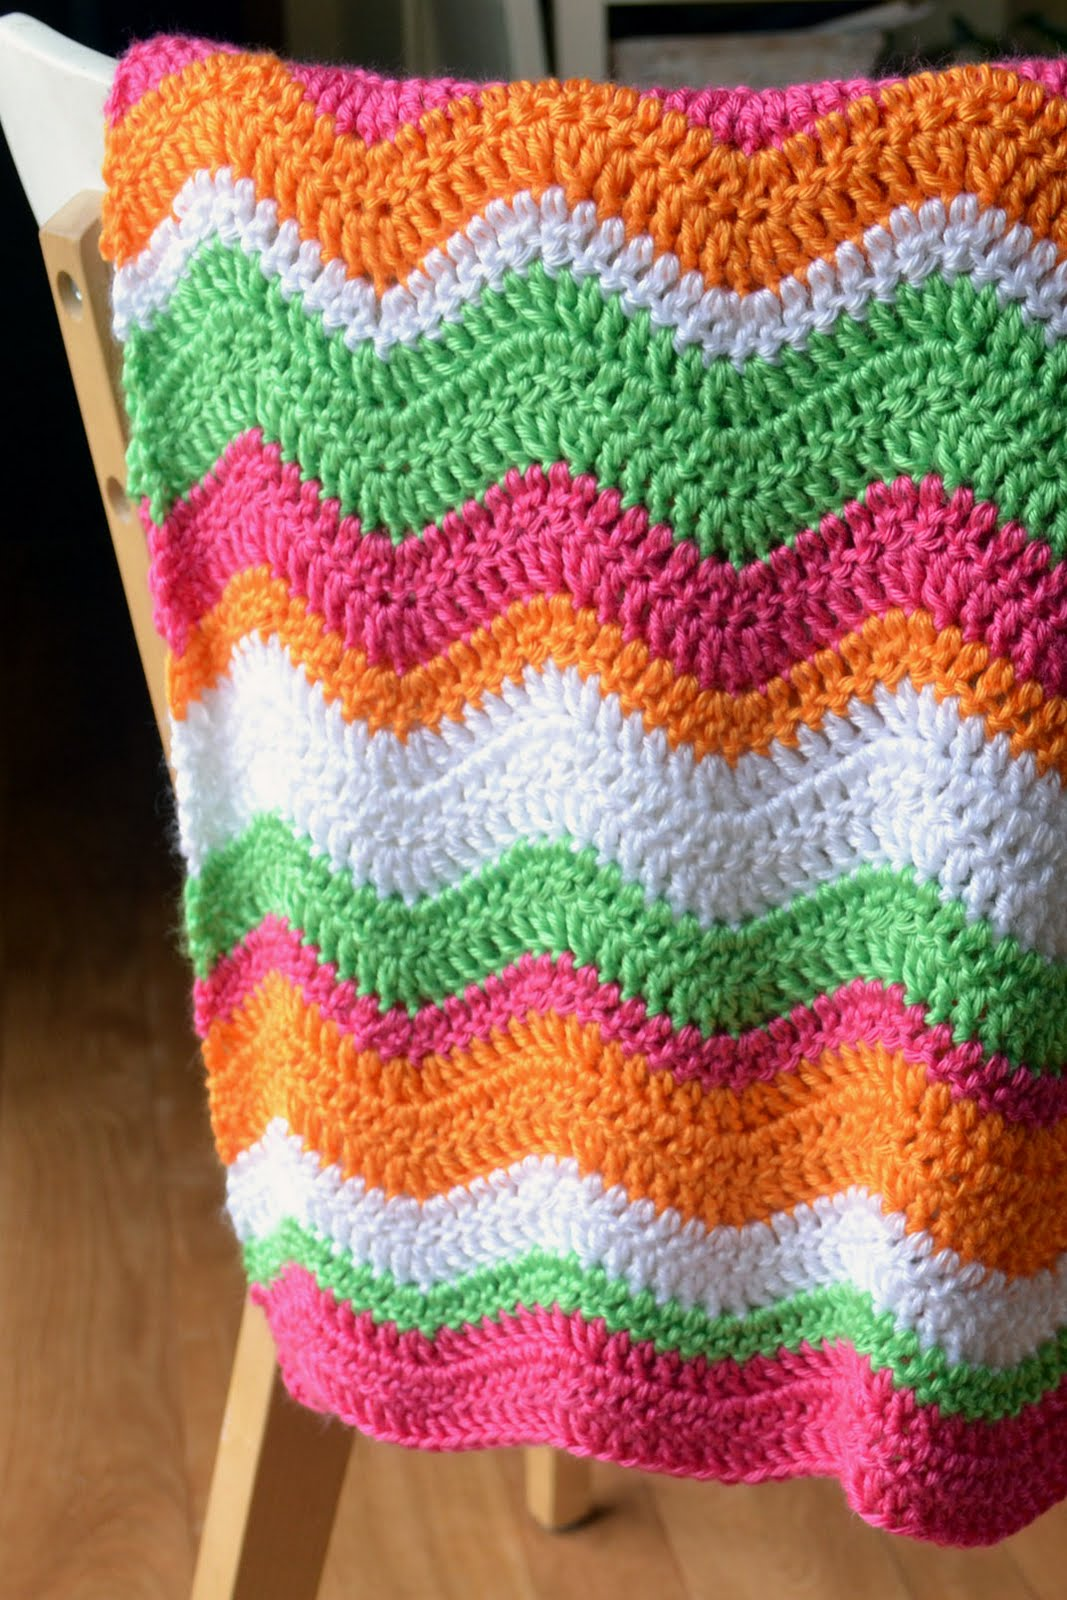 Crochet Ripple Afghan Patterns Requested the pattern for